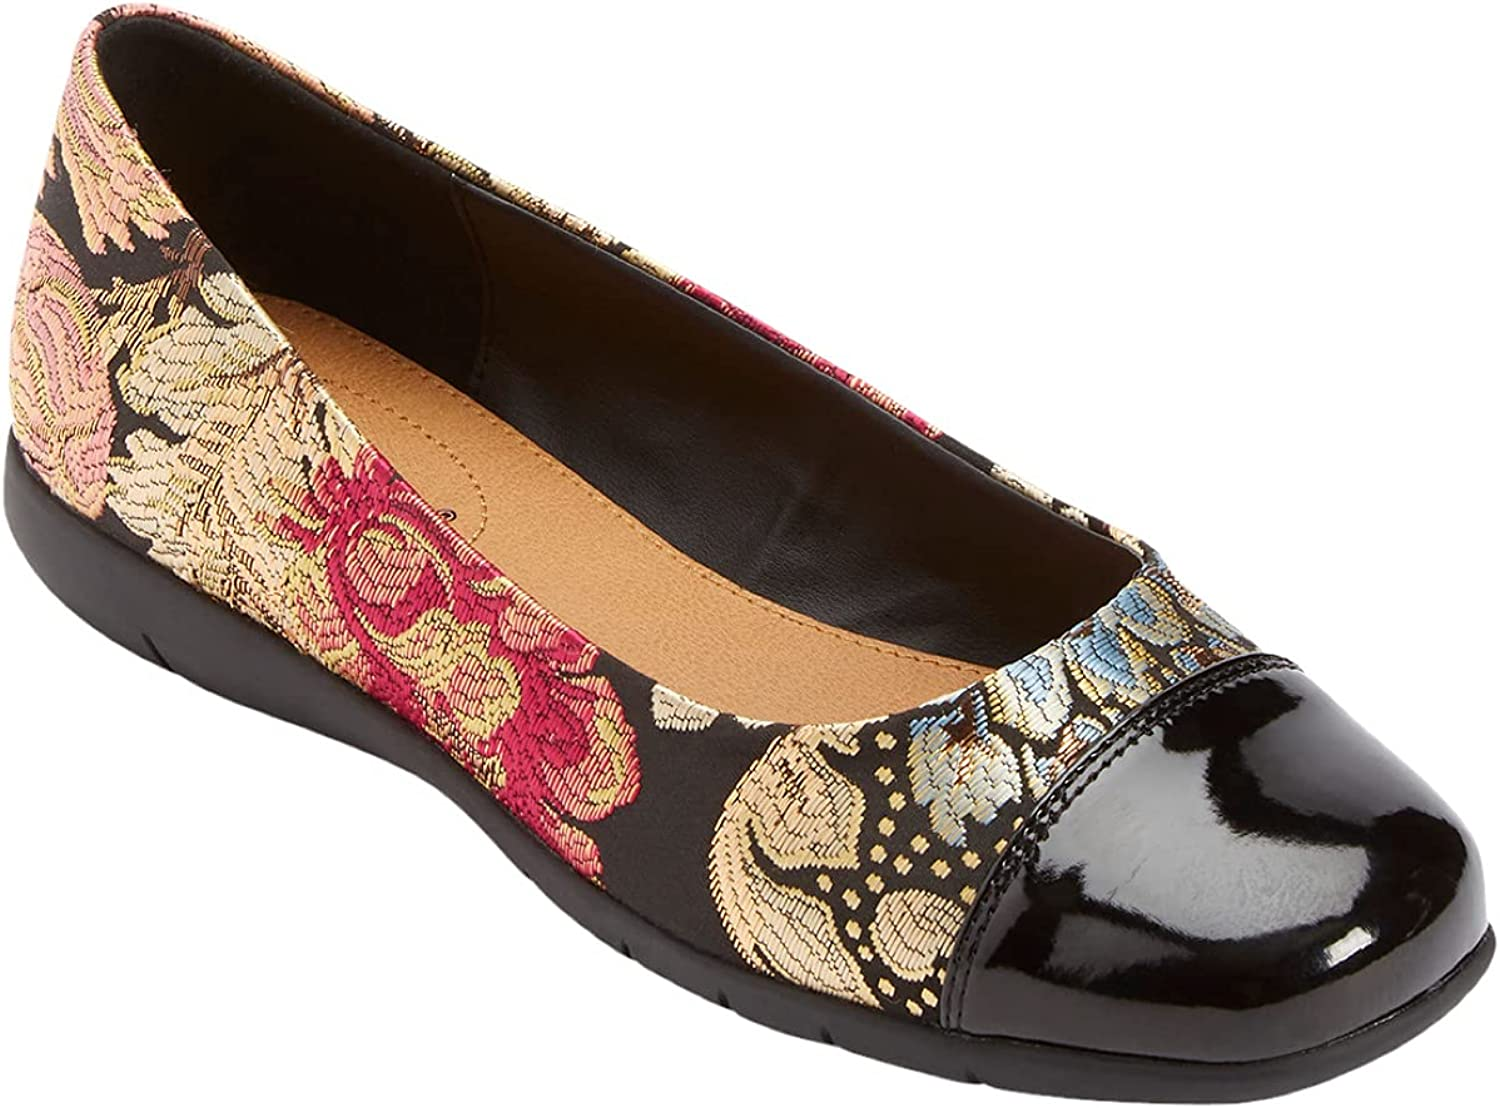 Comfortview Women's Wide Width The Fay Flat - 1 2W 10 Limited time cheap sale New Shipping Free Flo Shoes